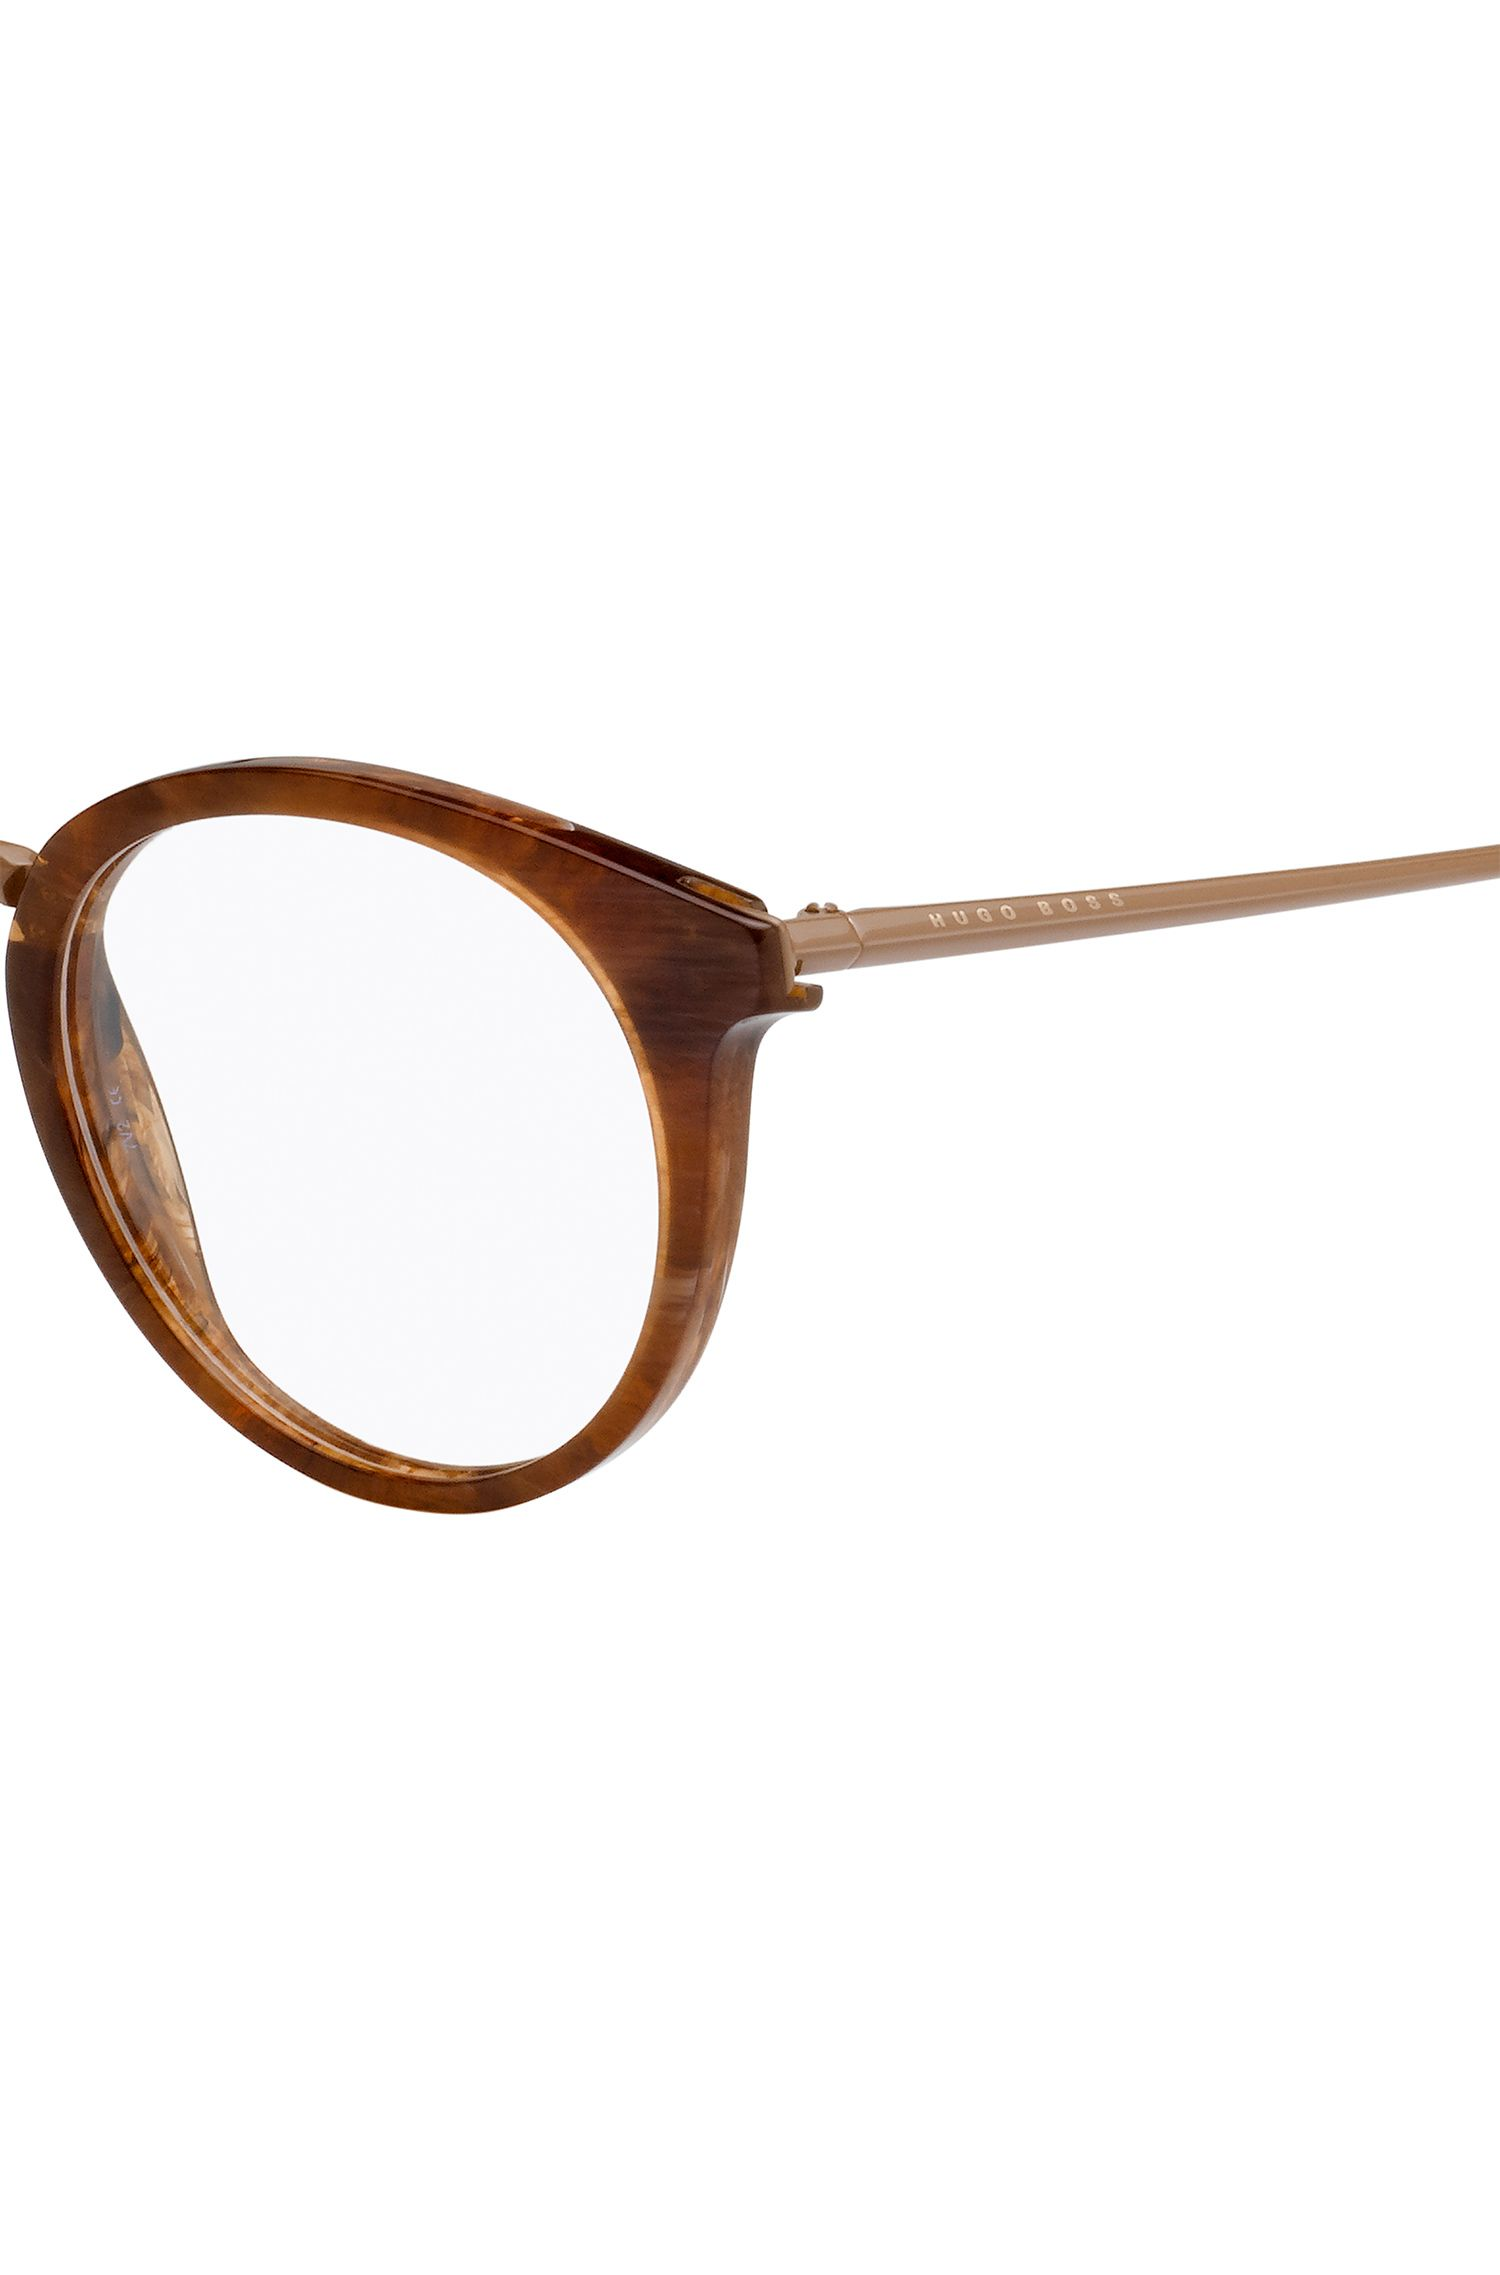 Clear-lens glasses with acetate frames